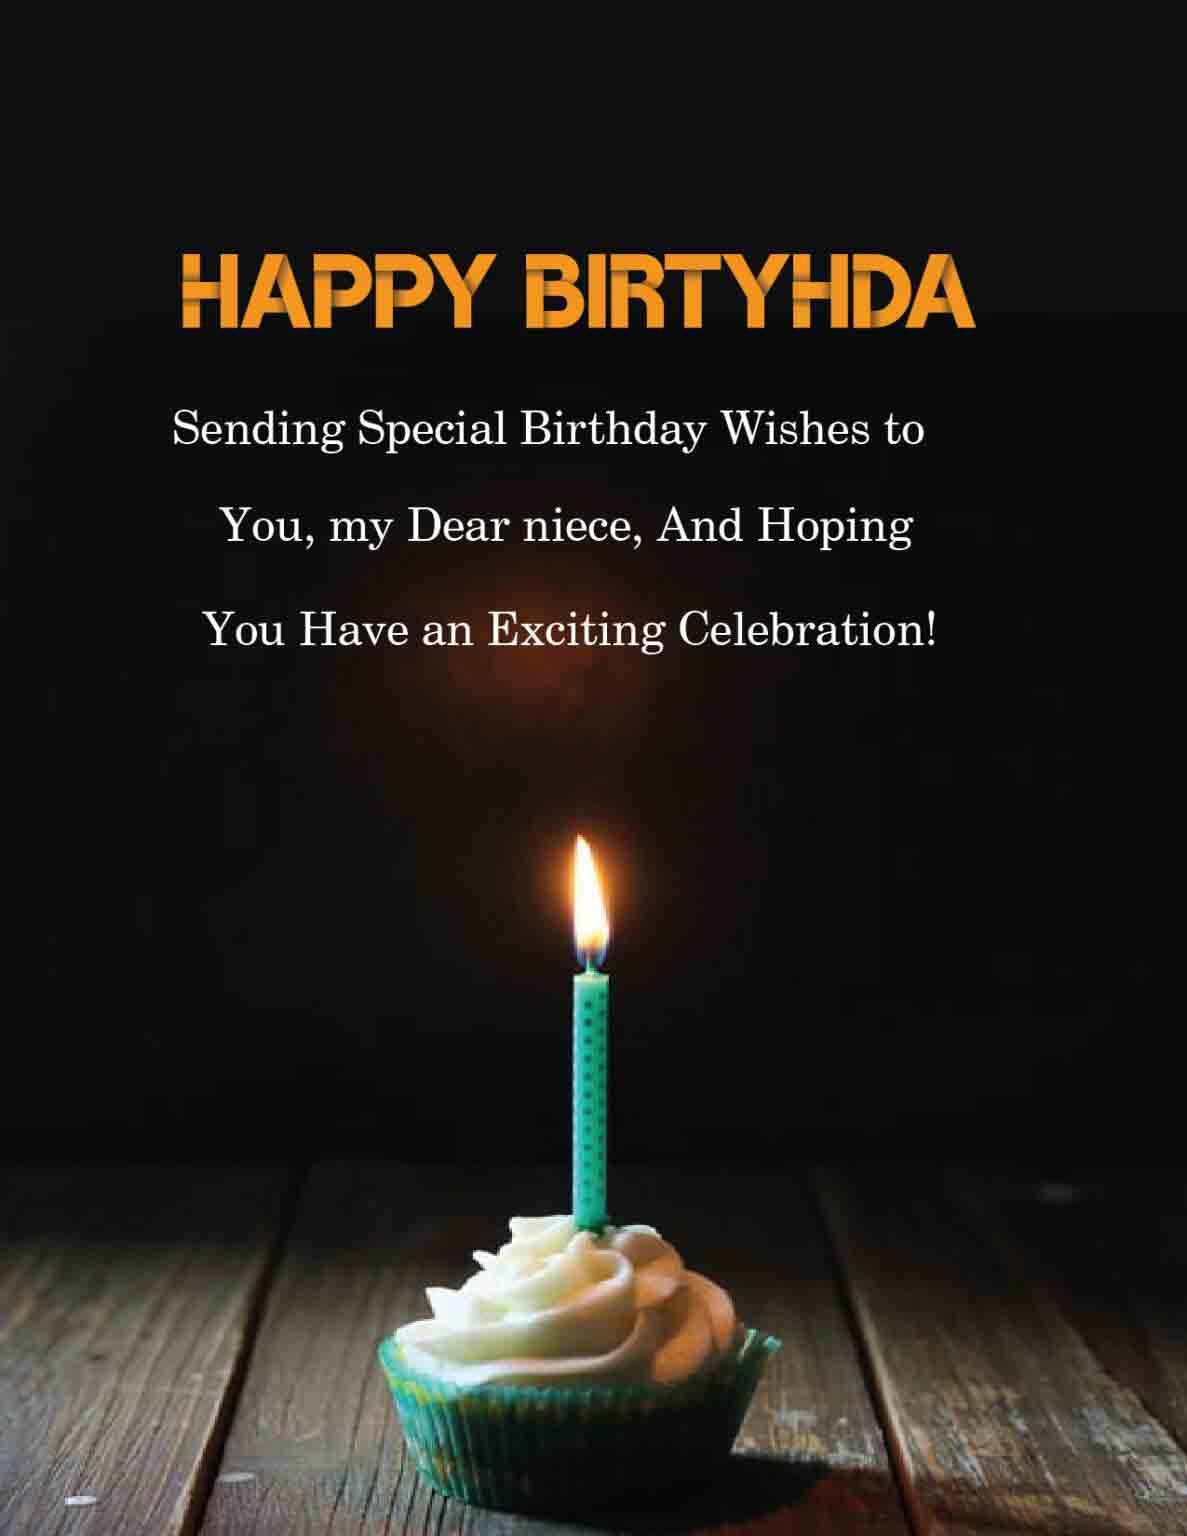 BIRTHDAY-IMAGES-FOR-HER-QOUTE